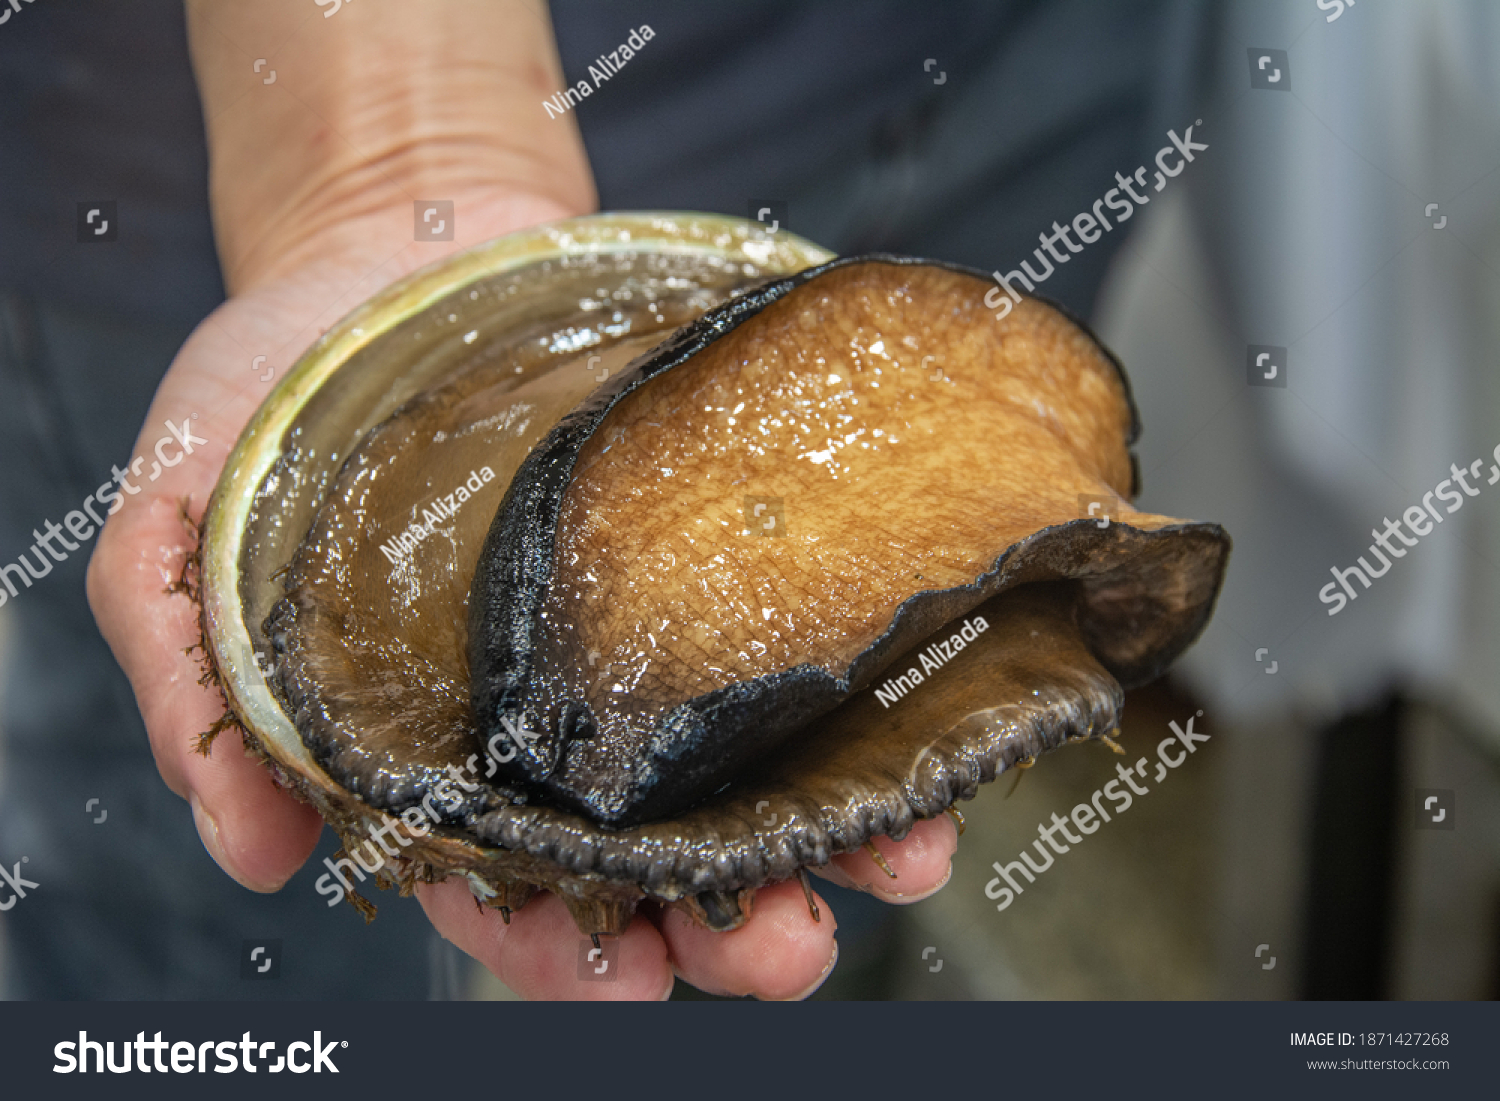 The black lip abalone, Haliotis rubra, an Australian specie of large, edible sea snail, a marine gastropod mollusk in the family Haliotidae, the abalone #1871427268